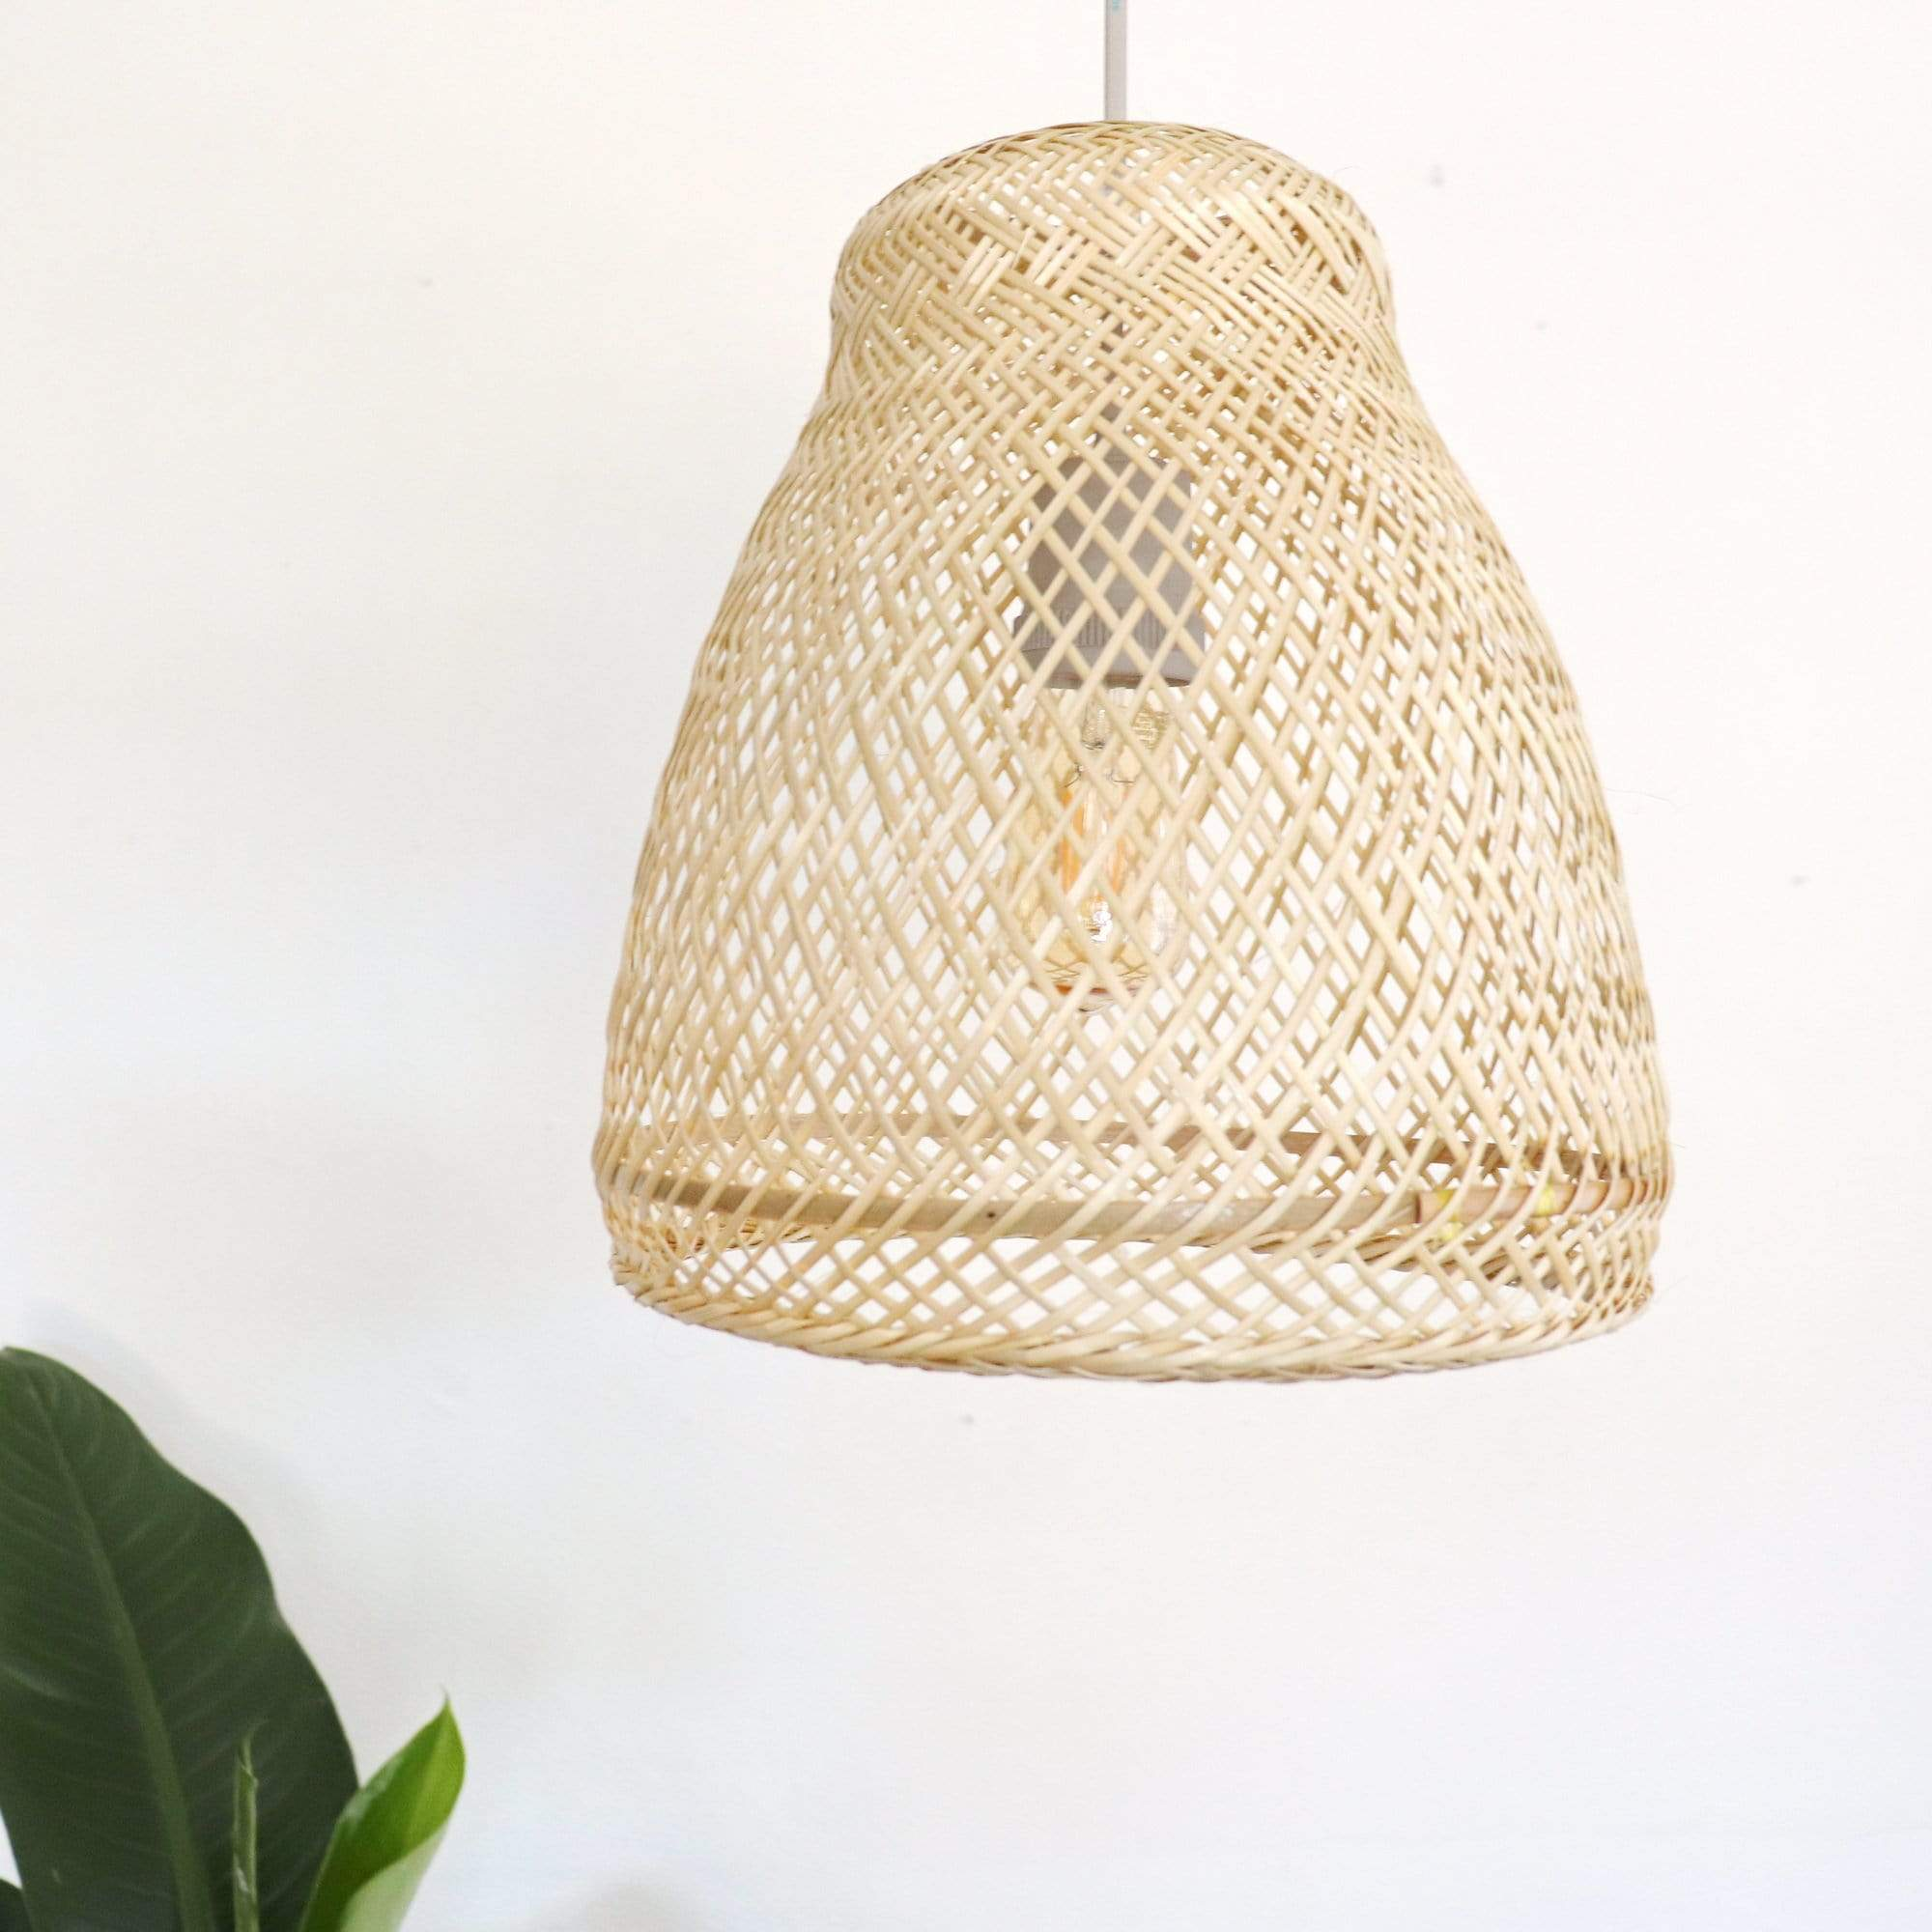 THAIHOMESHOP Bamboo Pendant Light MUNTANA - Bamboo Pendant Light shade